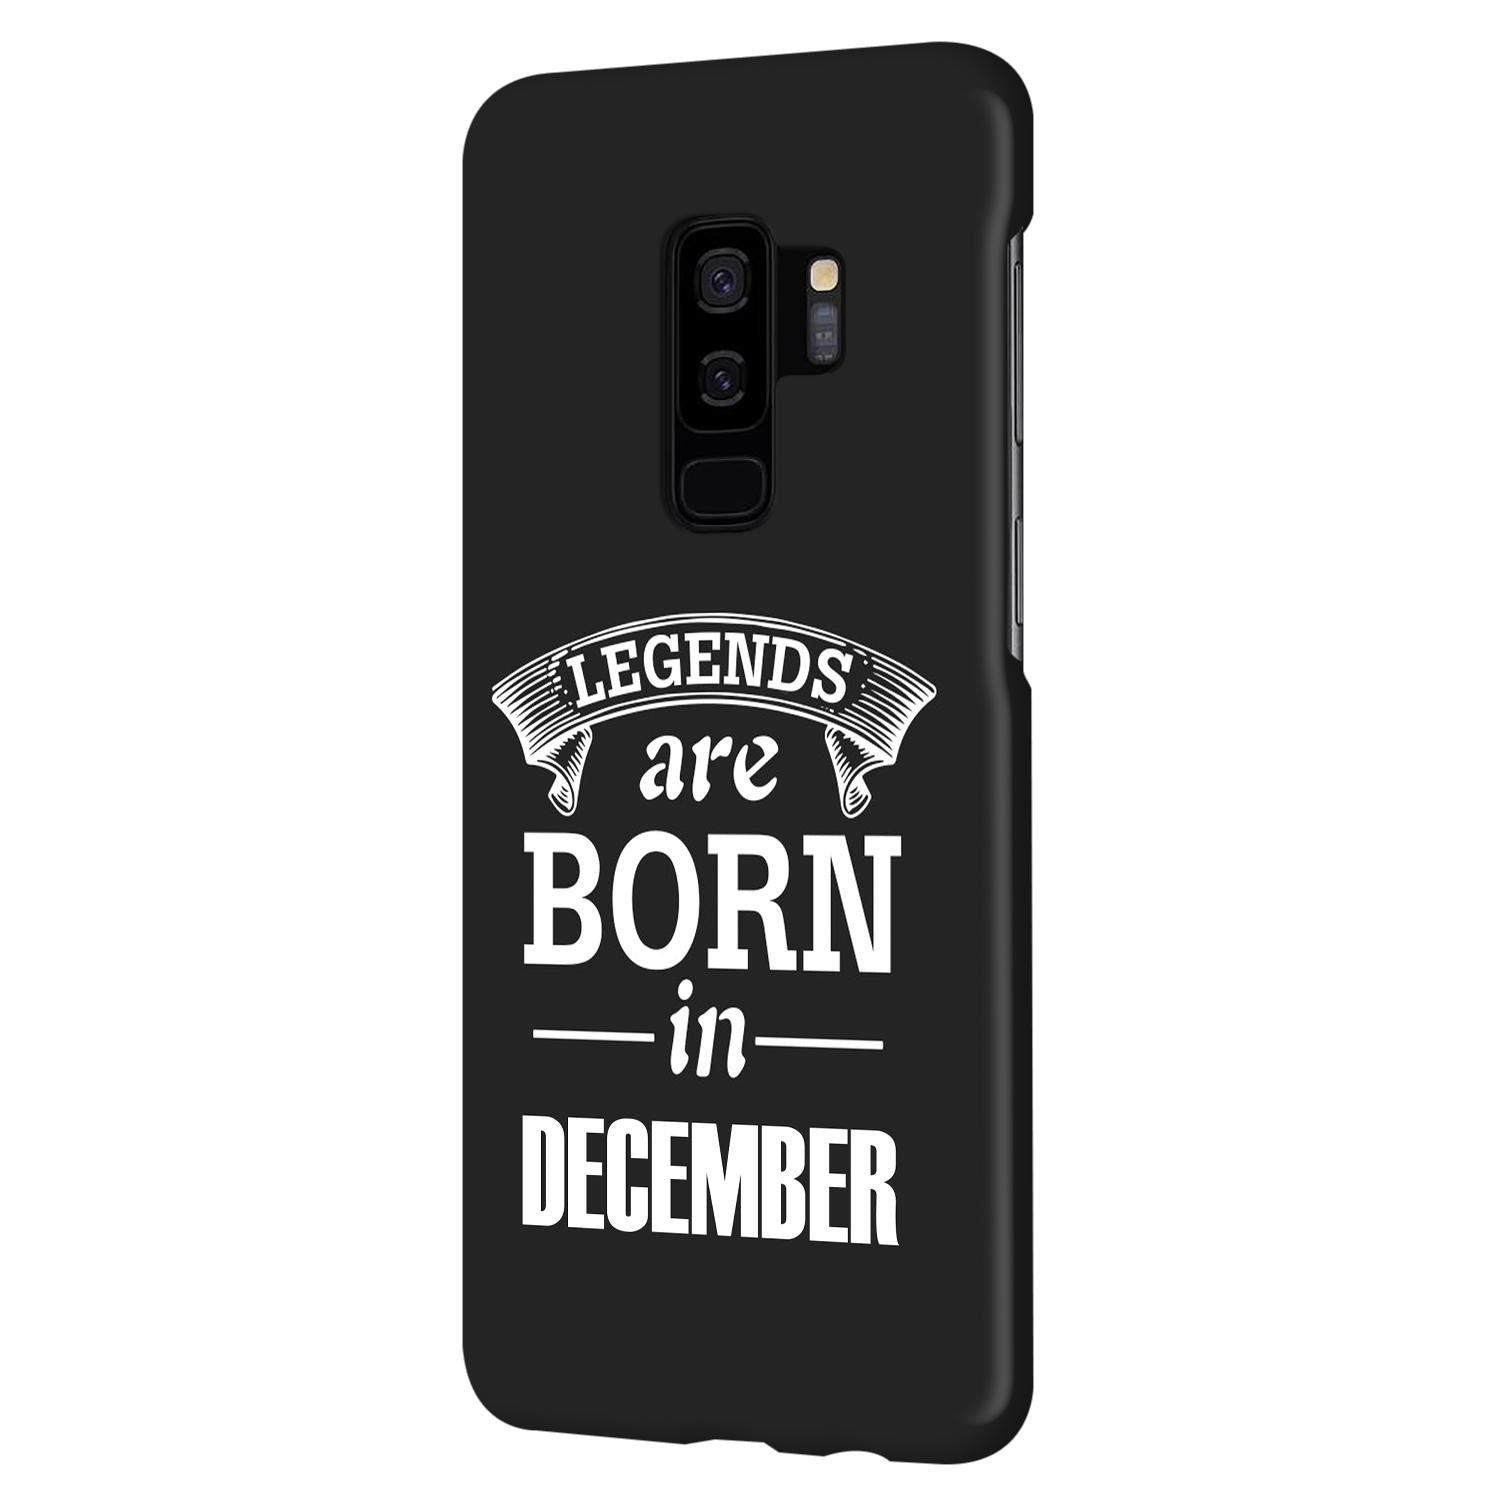 Legends December Samsung Galaxy S9 Plus Mobile Cover Case